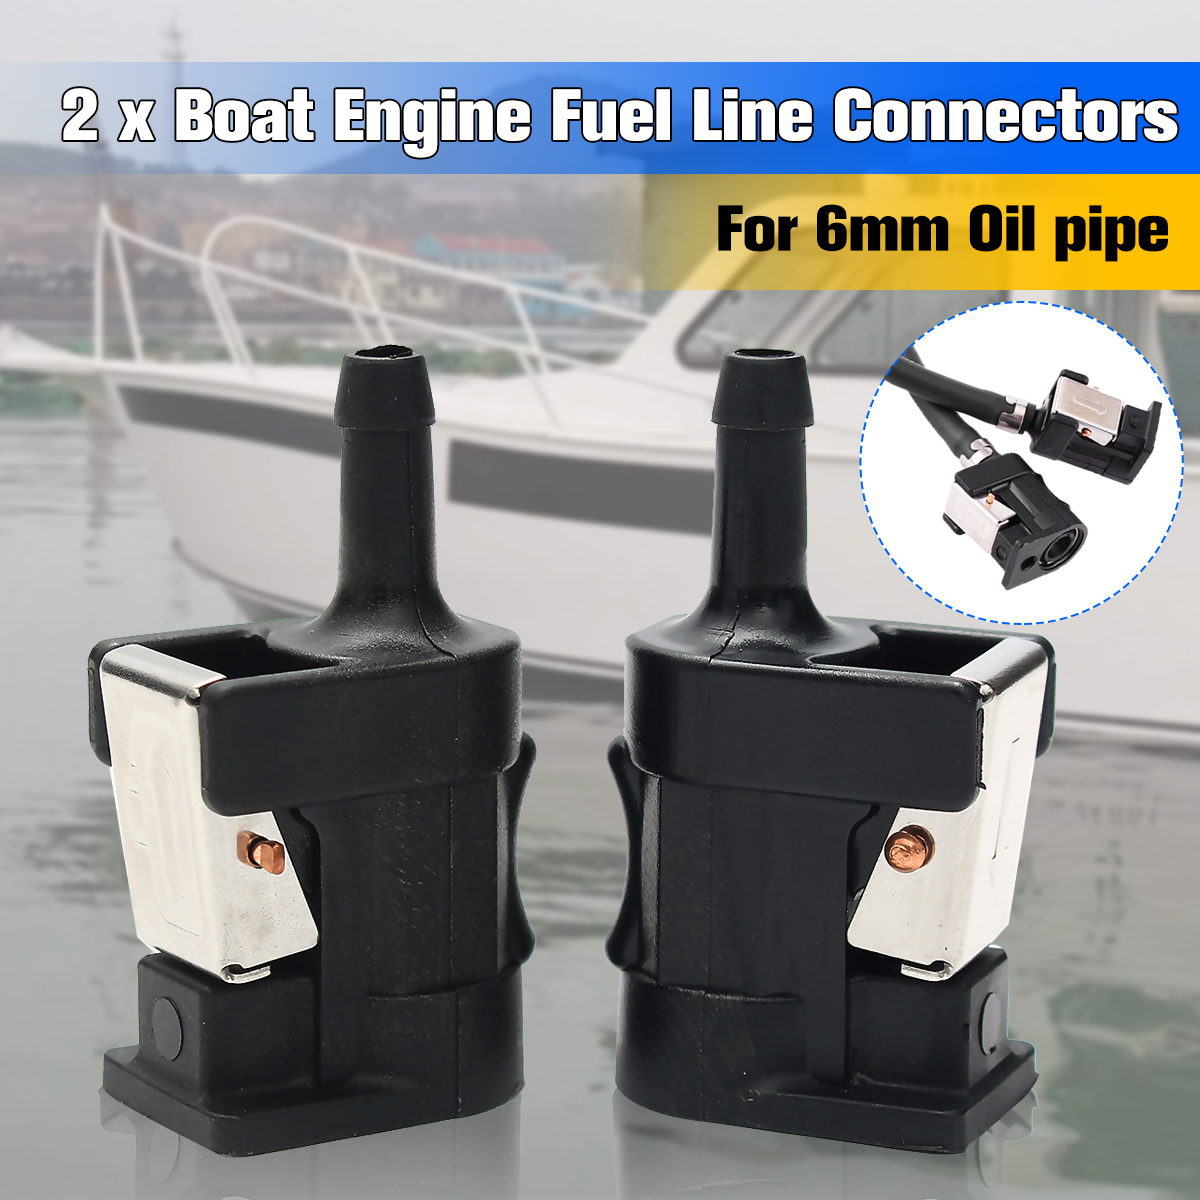 2Pcs Black Plastic 2.1x3.3x6.1cm Fuel Line Tank Connector for Yamaha Outboard Motor Engine 6mm Hose Arrow Marked On Body цена и фото